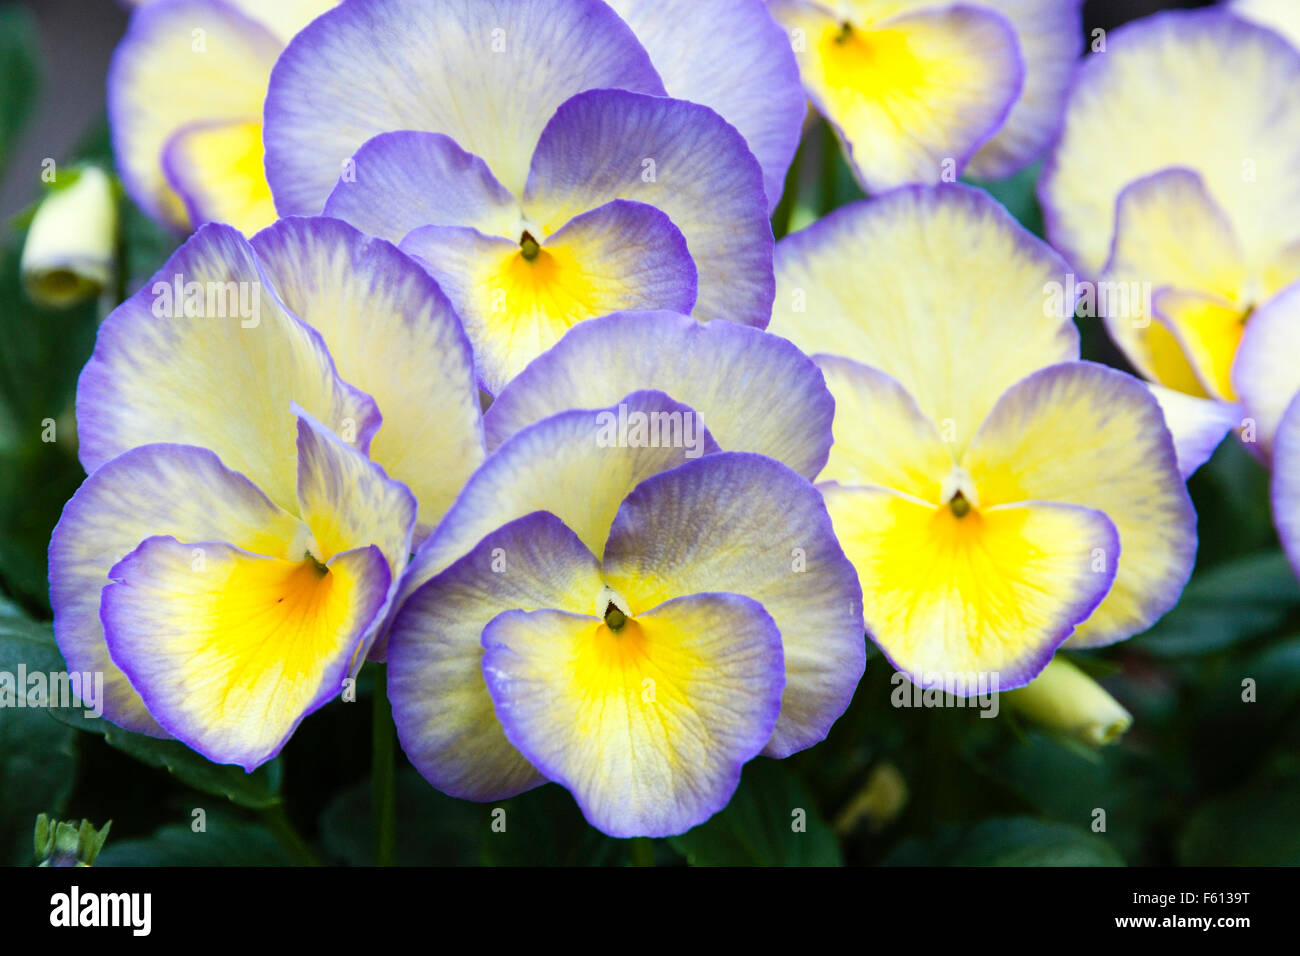 Clump of several yellow and mauve pansy flowers in full bloom facing viewer. - Stock Image